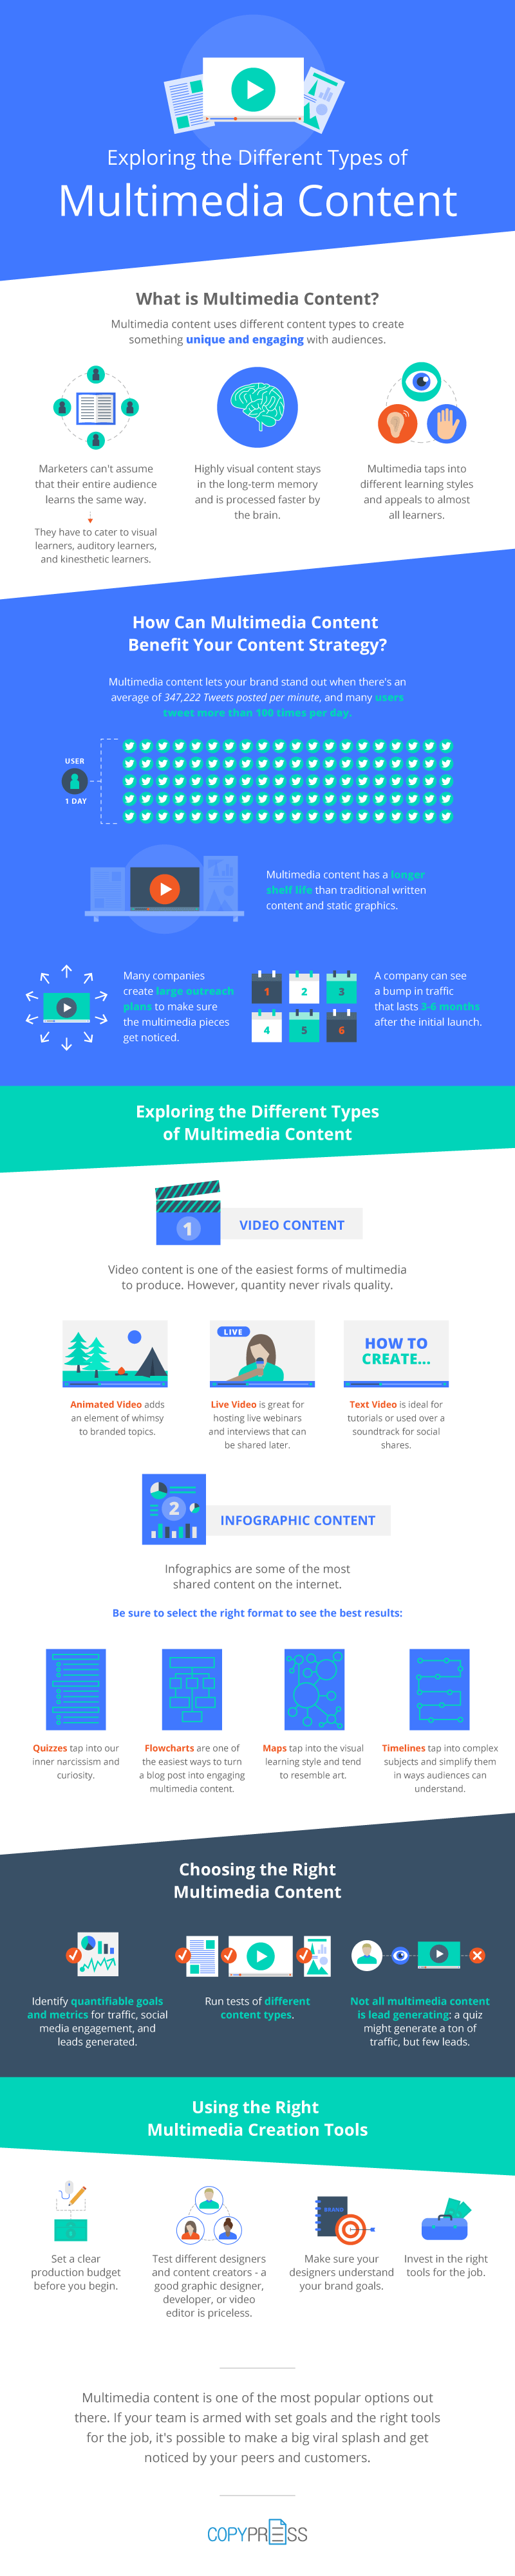 Exploring Different Types of Multimedia Content